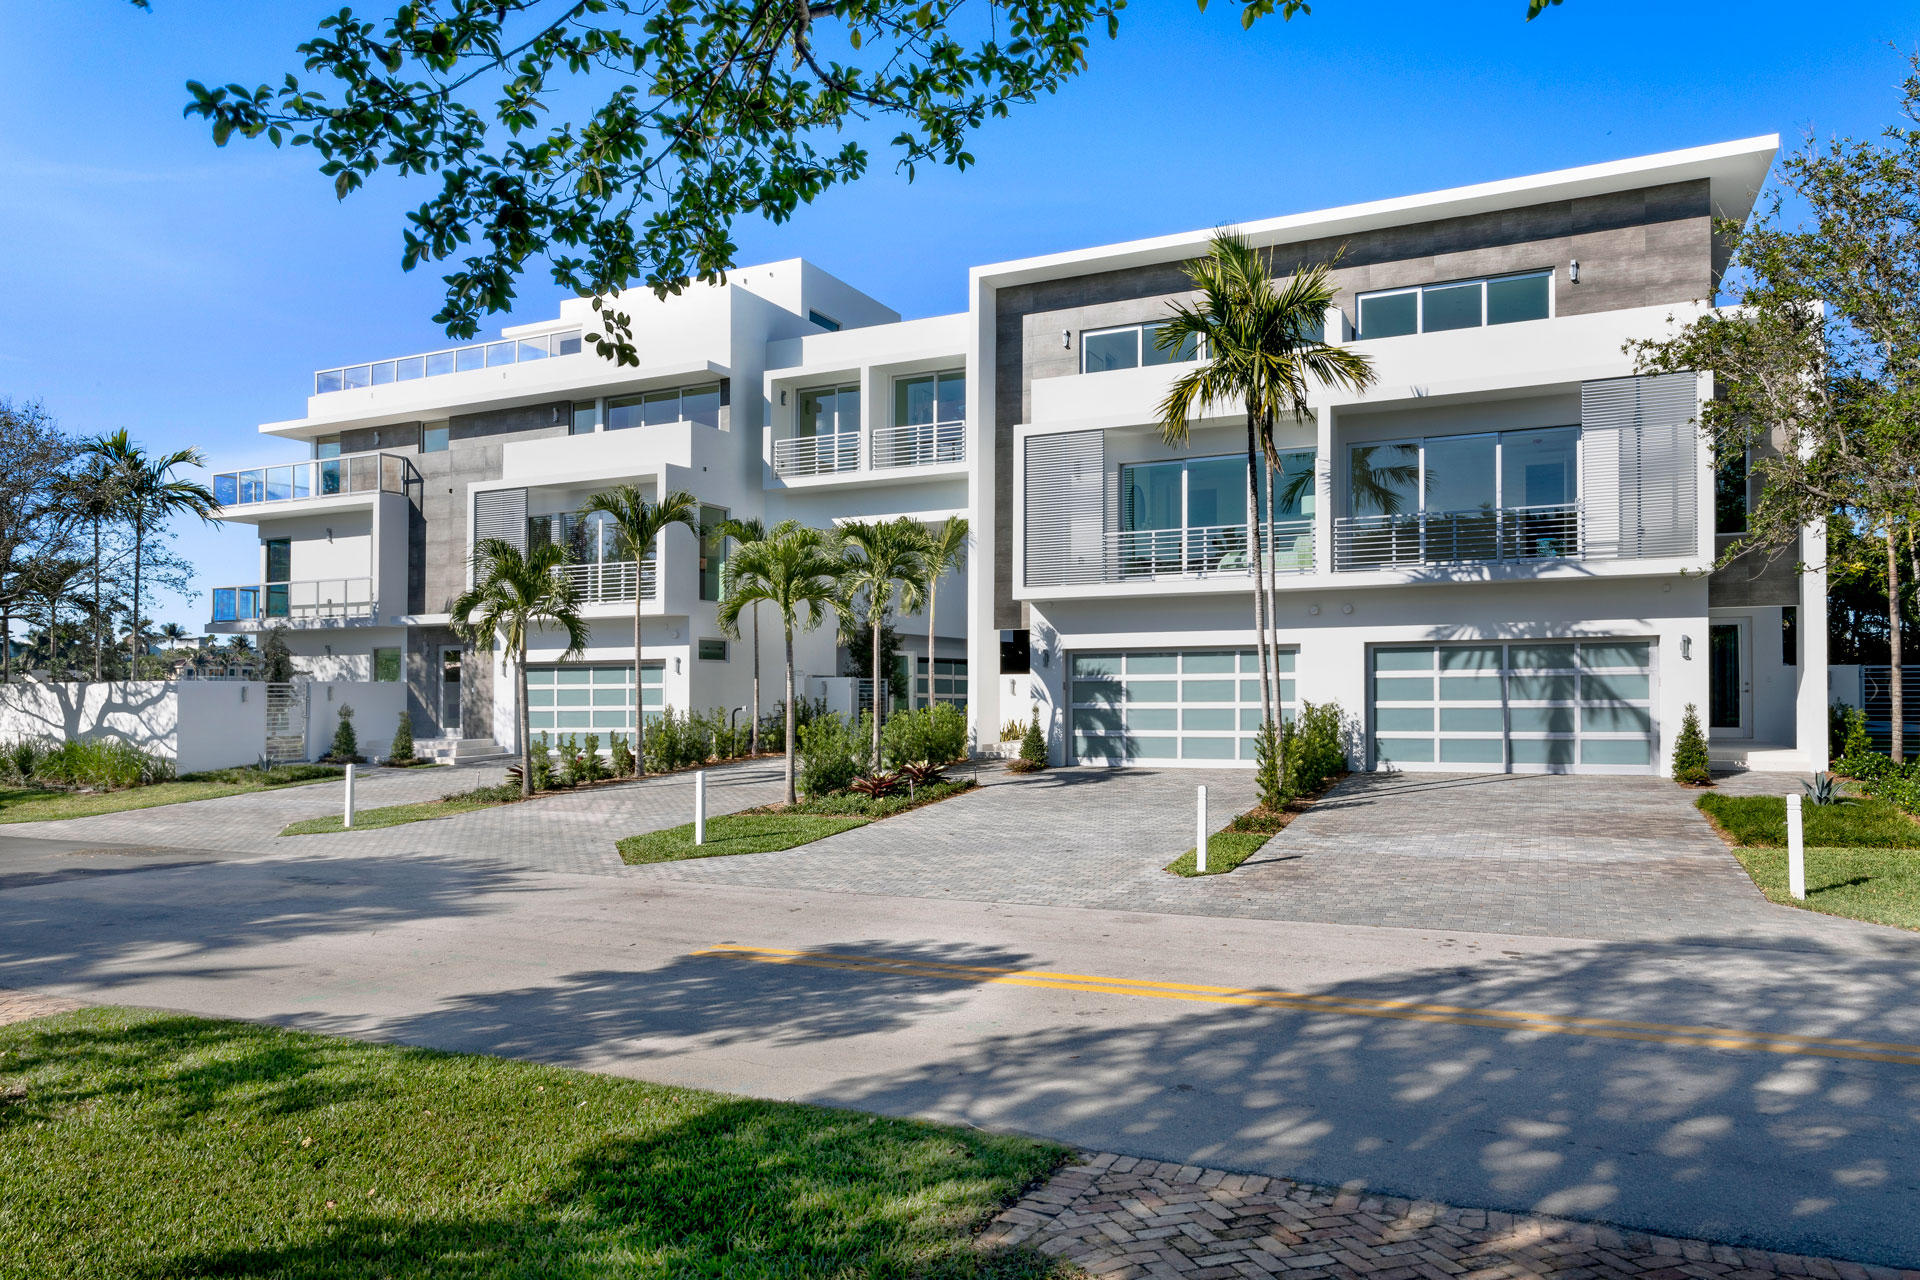 917 Bucida Road, Delray Beach, Florida 33483, 3 Bedrooms Bedrooms, ,3.1 BathroomsBathrooms,Townhouse,For Sale,Bucida,RX-10622727